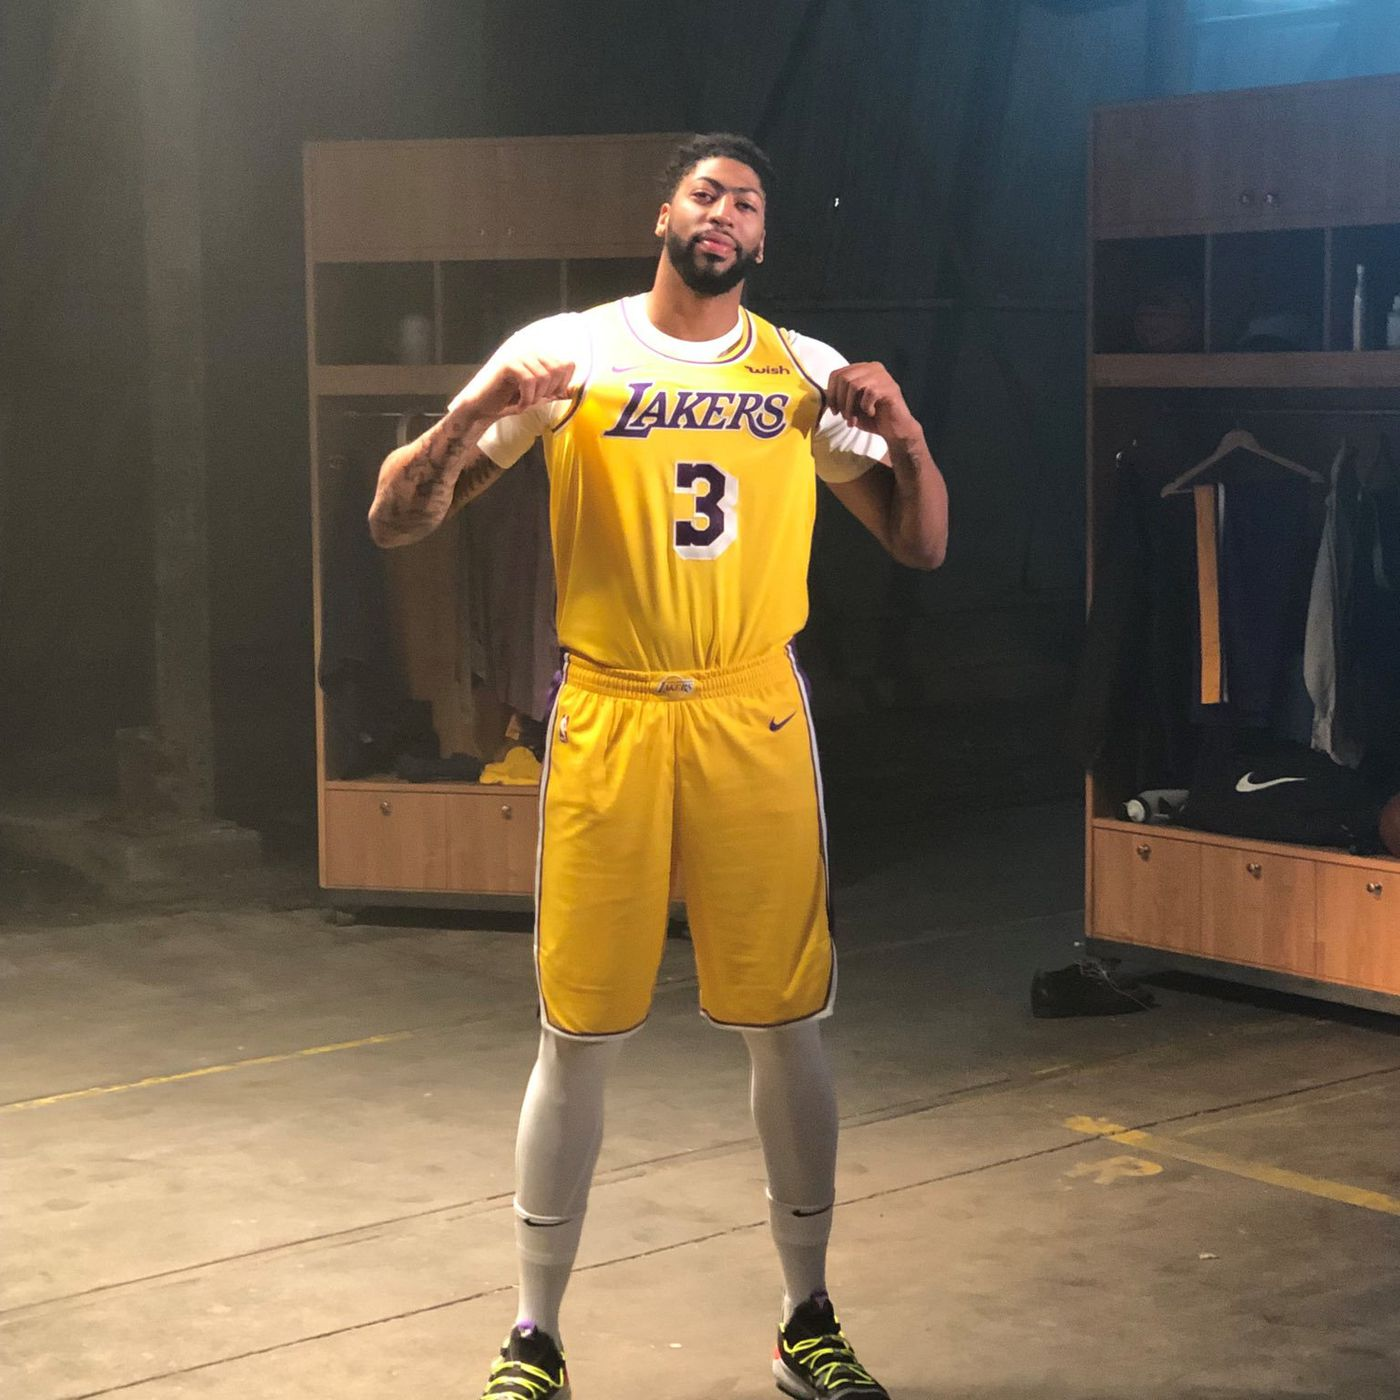 NBA 2K gave us our first look at Anthony Davis in new Lakers ...